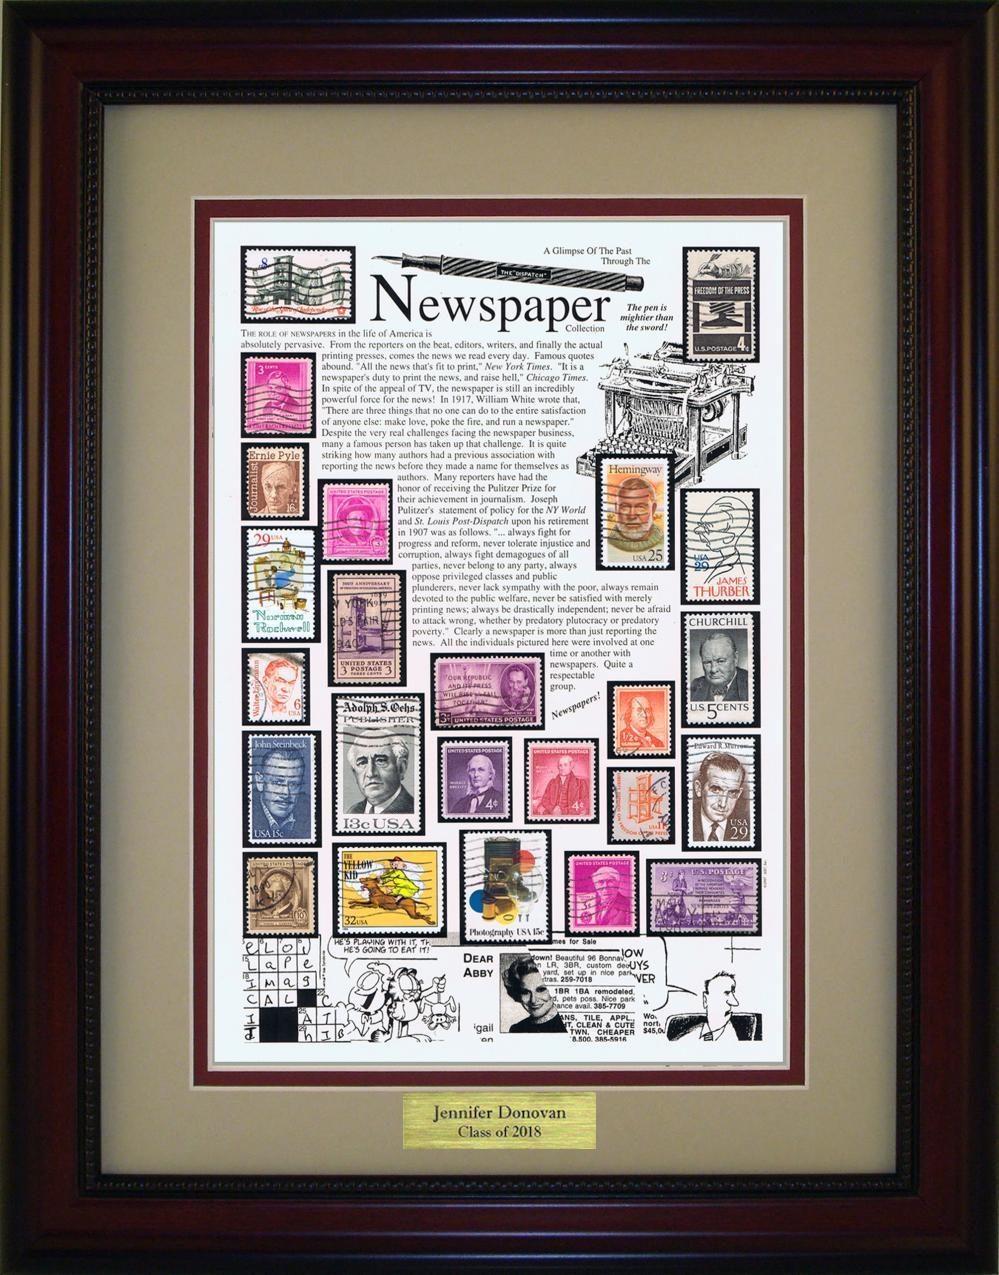 Newspaper - Personalized Unique Framed Gift